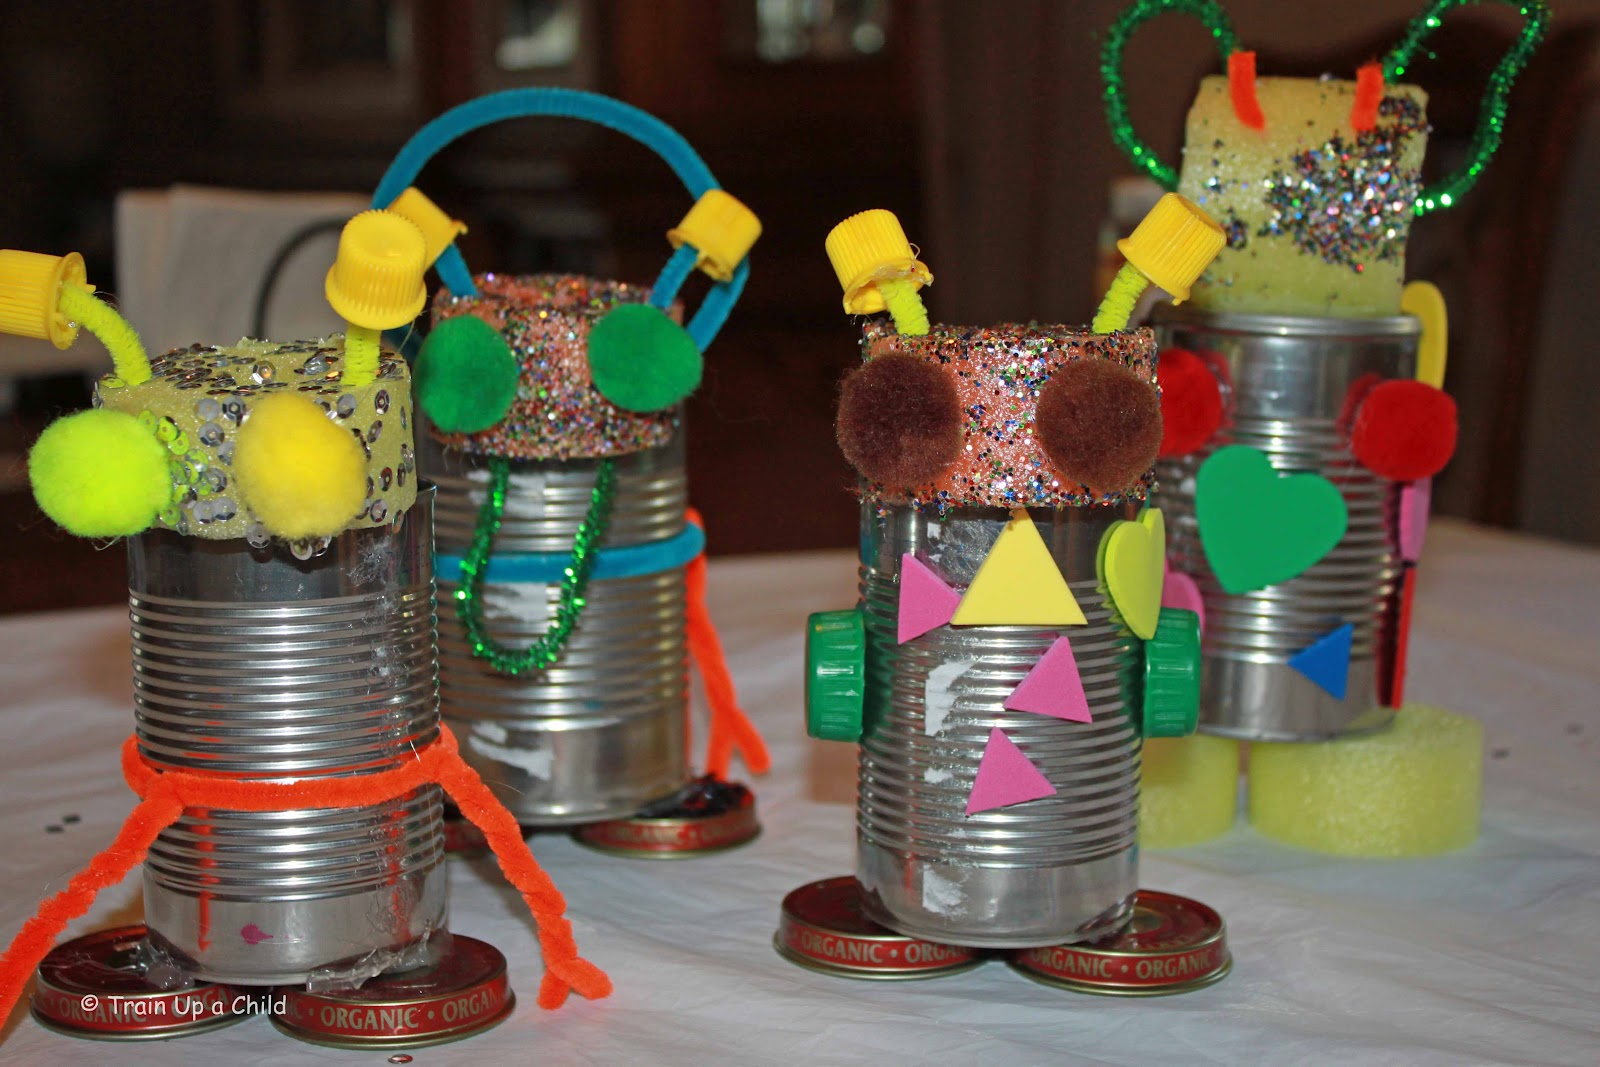 Art and craft ideas for kids using recycled materials for Art from waste ideas for kids